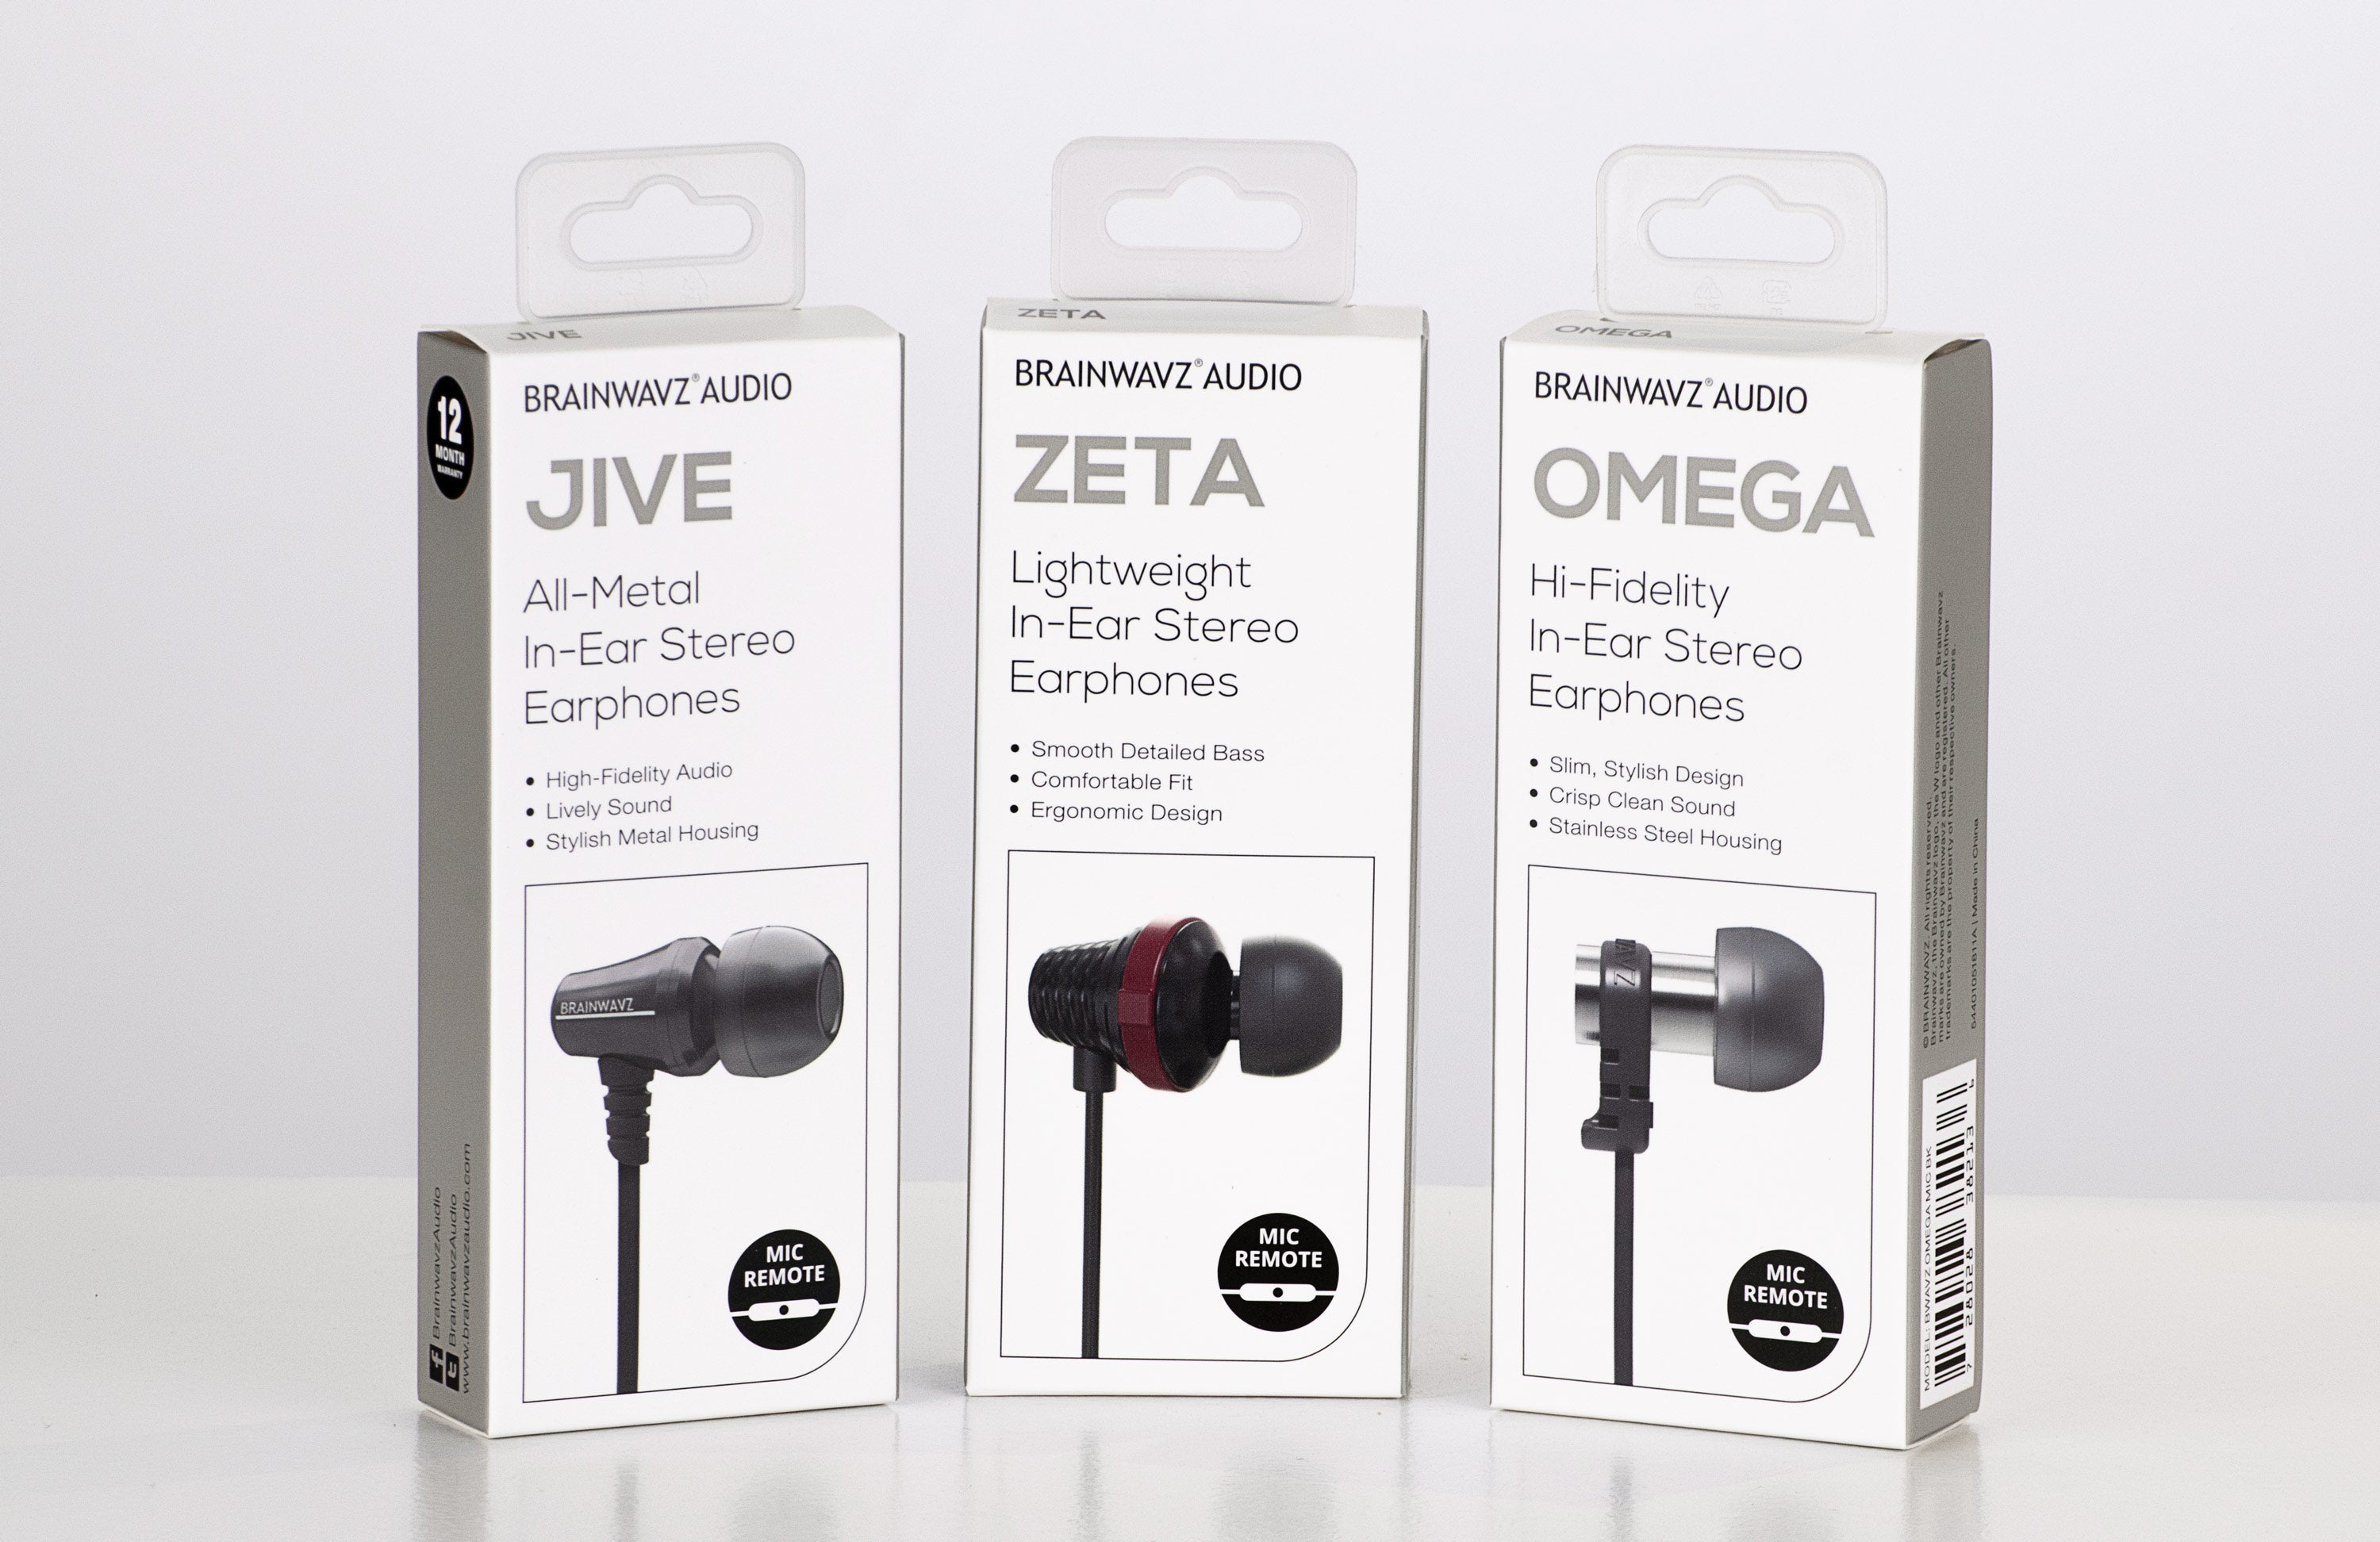 Image showing updated packaging for Brainwavz Jive, Zeta and Omega